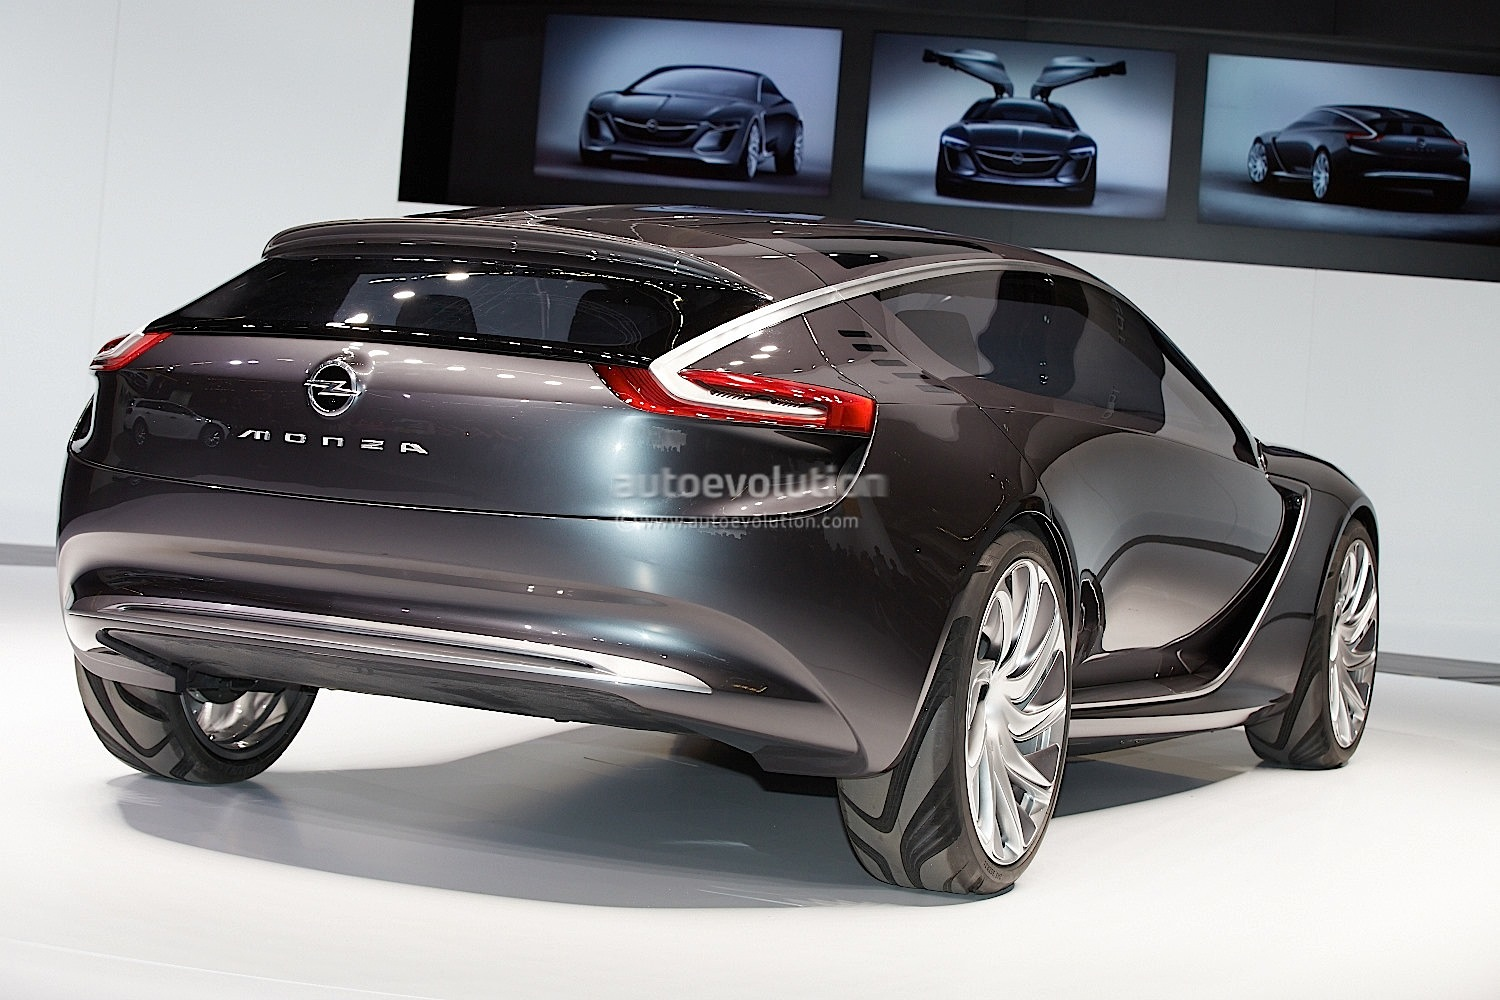 frankfurt 2013 opel monza concept revealed live photos autoevolution. Black Bedroom Furniture Sets. Home Design Ideas